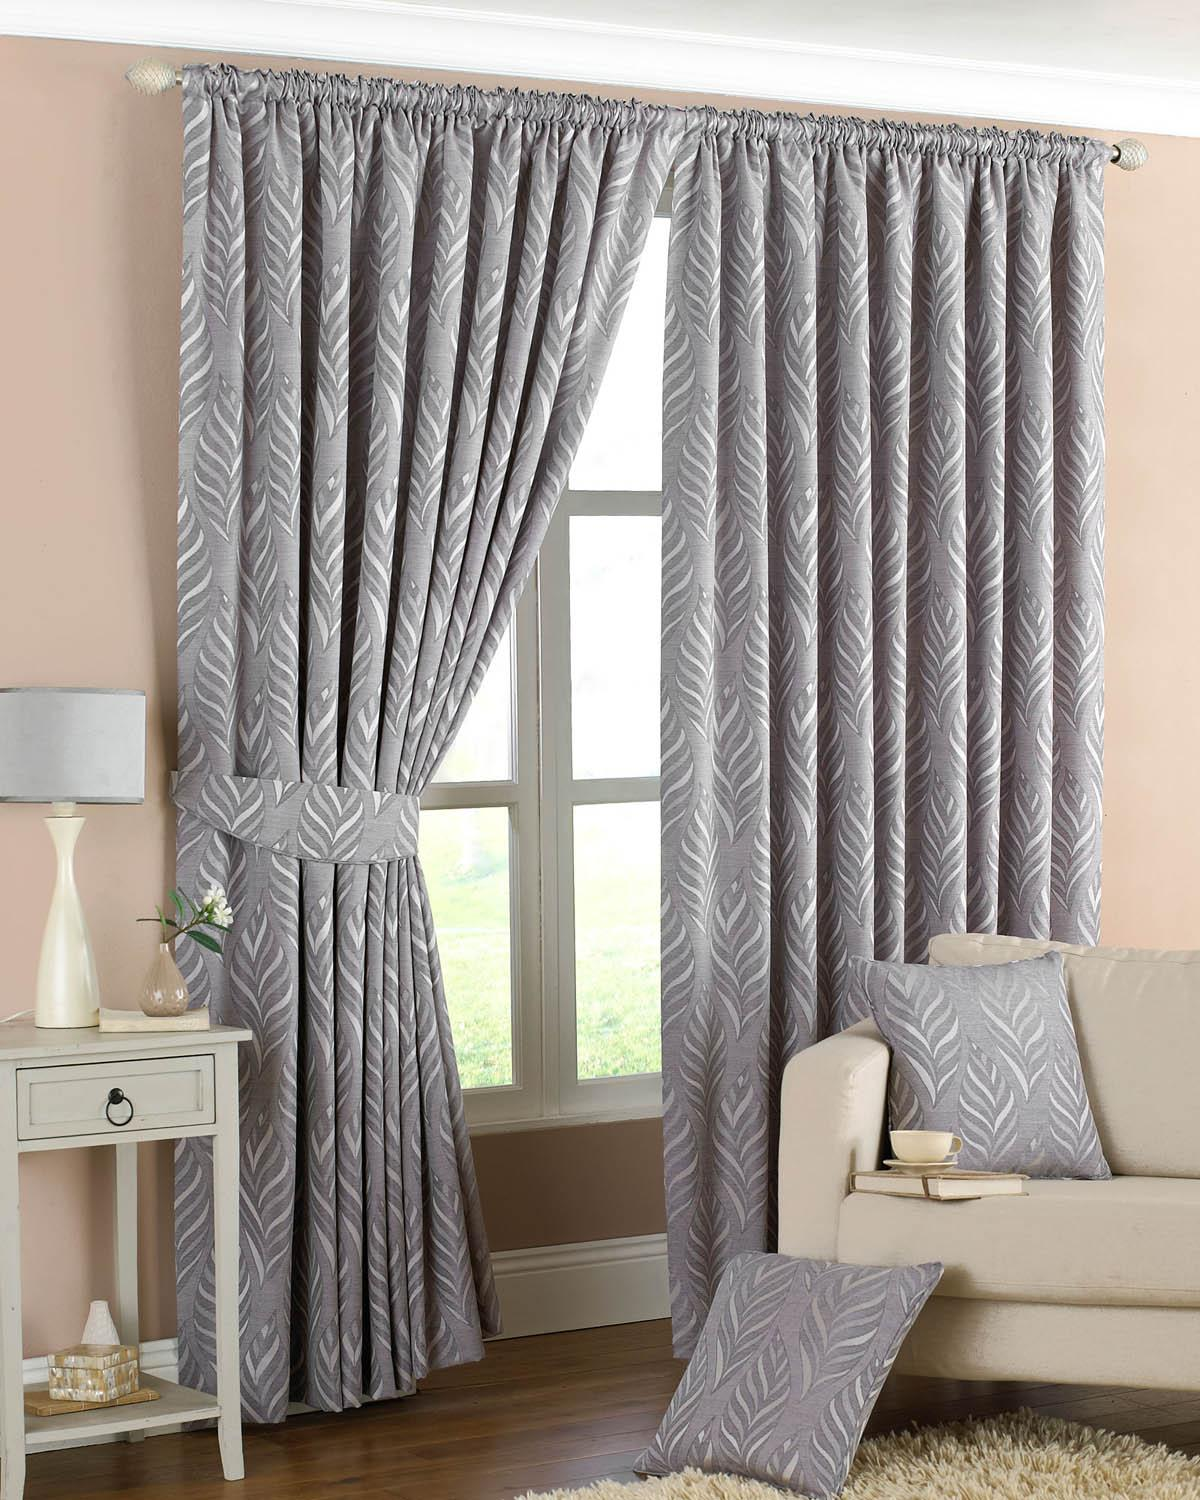 Cheap grey curtains - Cheap Grey Curtains Narrow Leaf Ready Made Lined Curtains